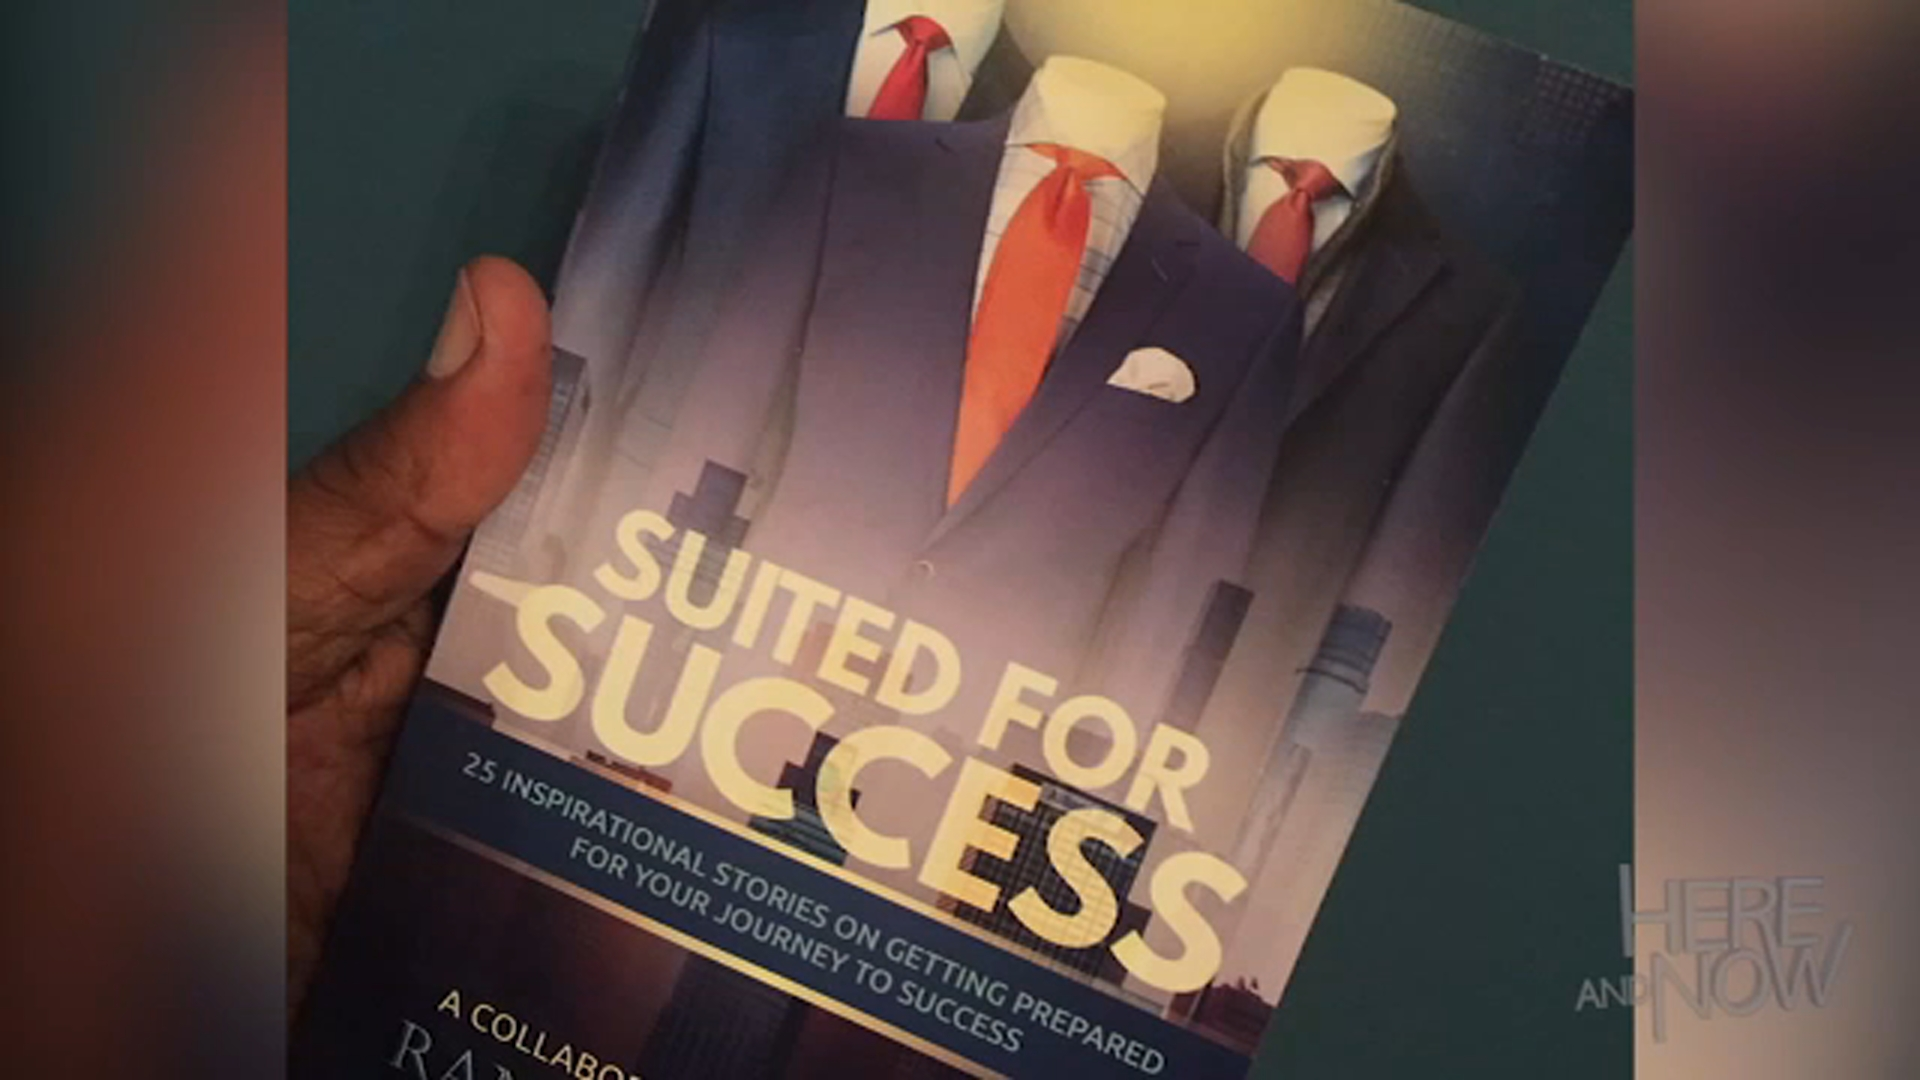 The guests came together to contribute towards a book of stories of twenty-five bold men who are determined to realize their dreams.